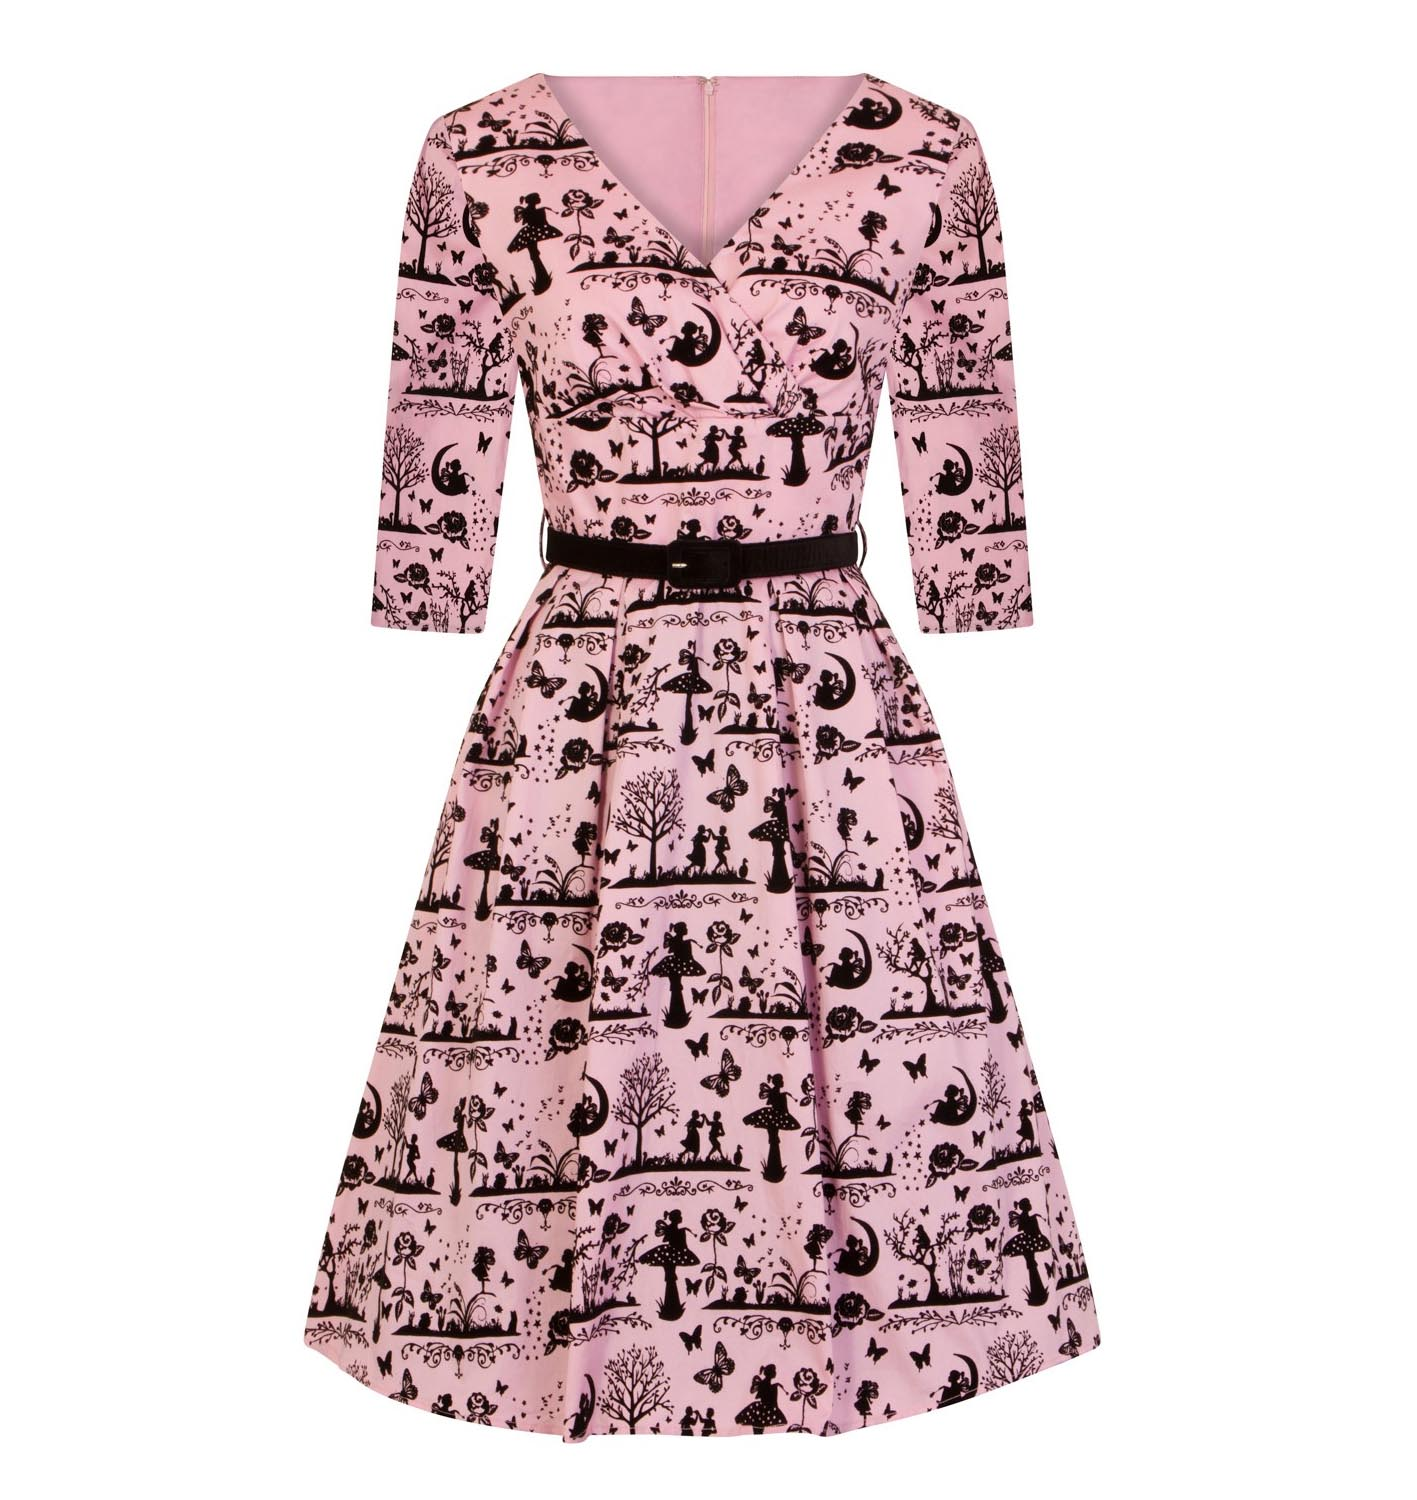 Hell-Bunny-40s-50s-Pin-Up-Dress-Fairy-Butterfly-ANDERSON-Black-Pink-All-Sizes thumbnail 19